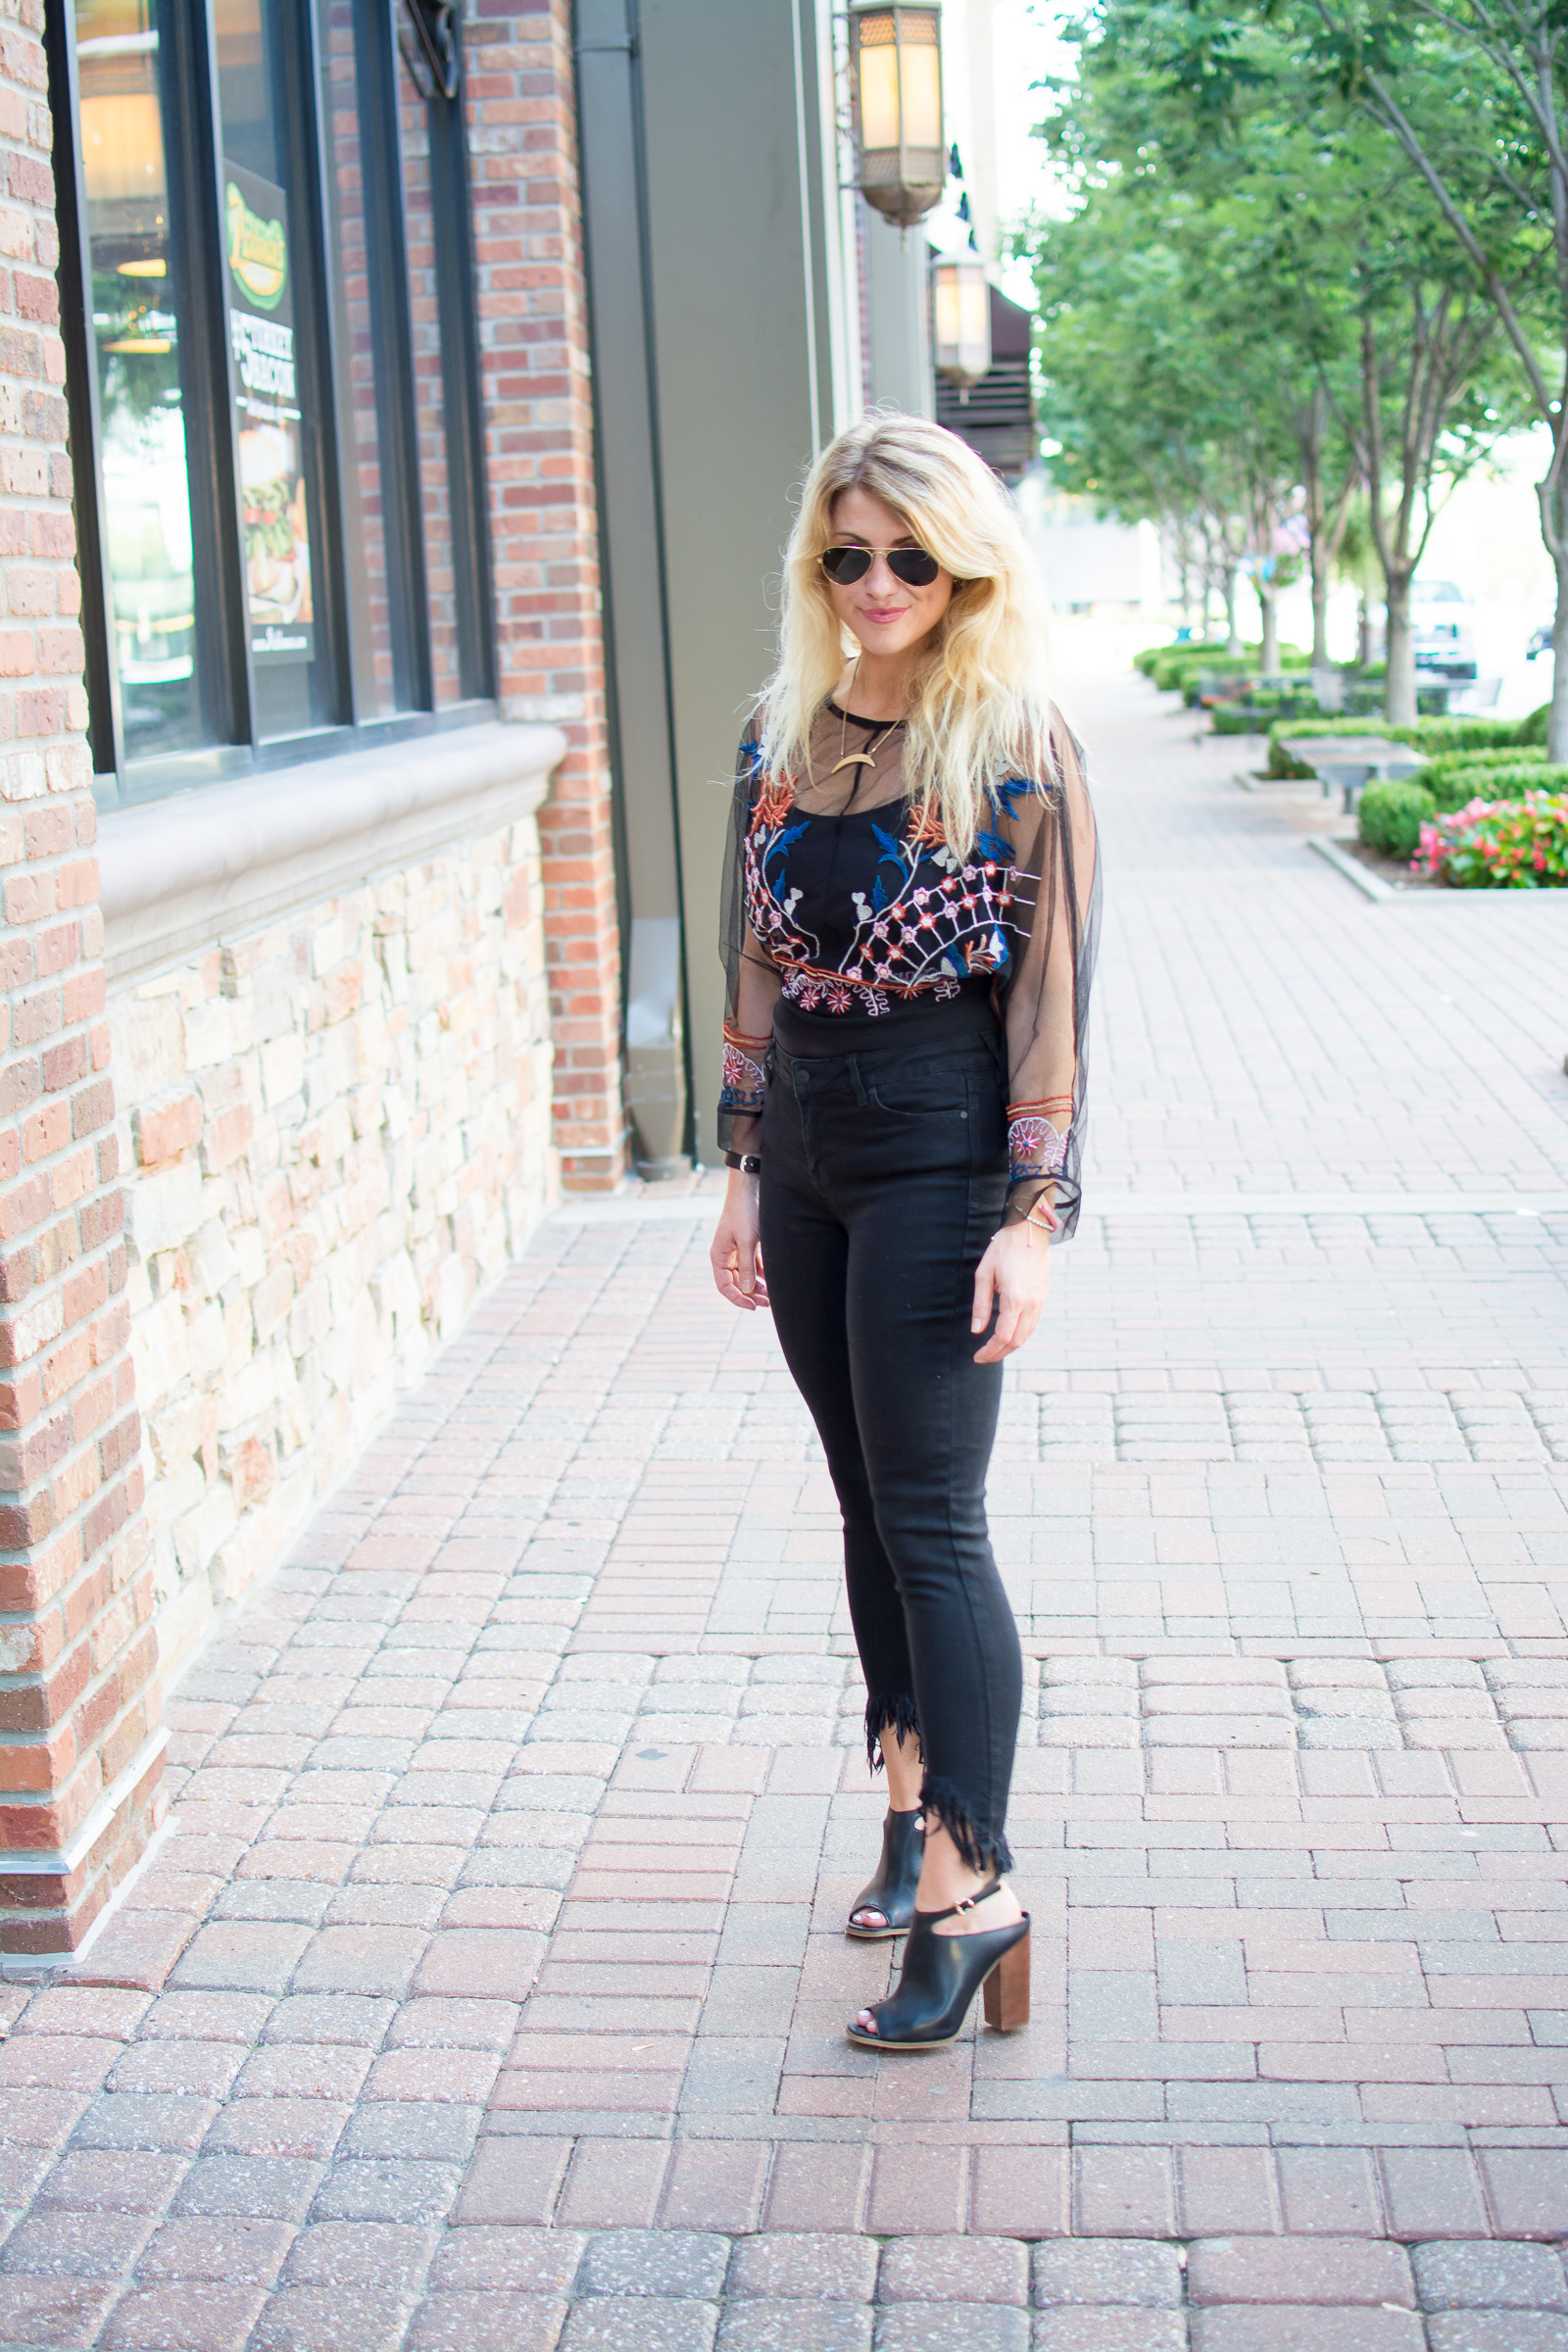 Outfit Idea: Black Frayed Jeans + Sheer Embroidered Shirt. | Ashley from Le Stylo Rouge